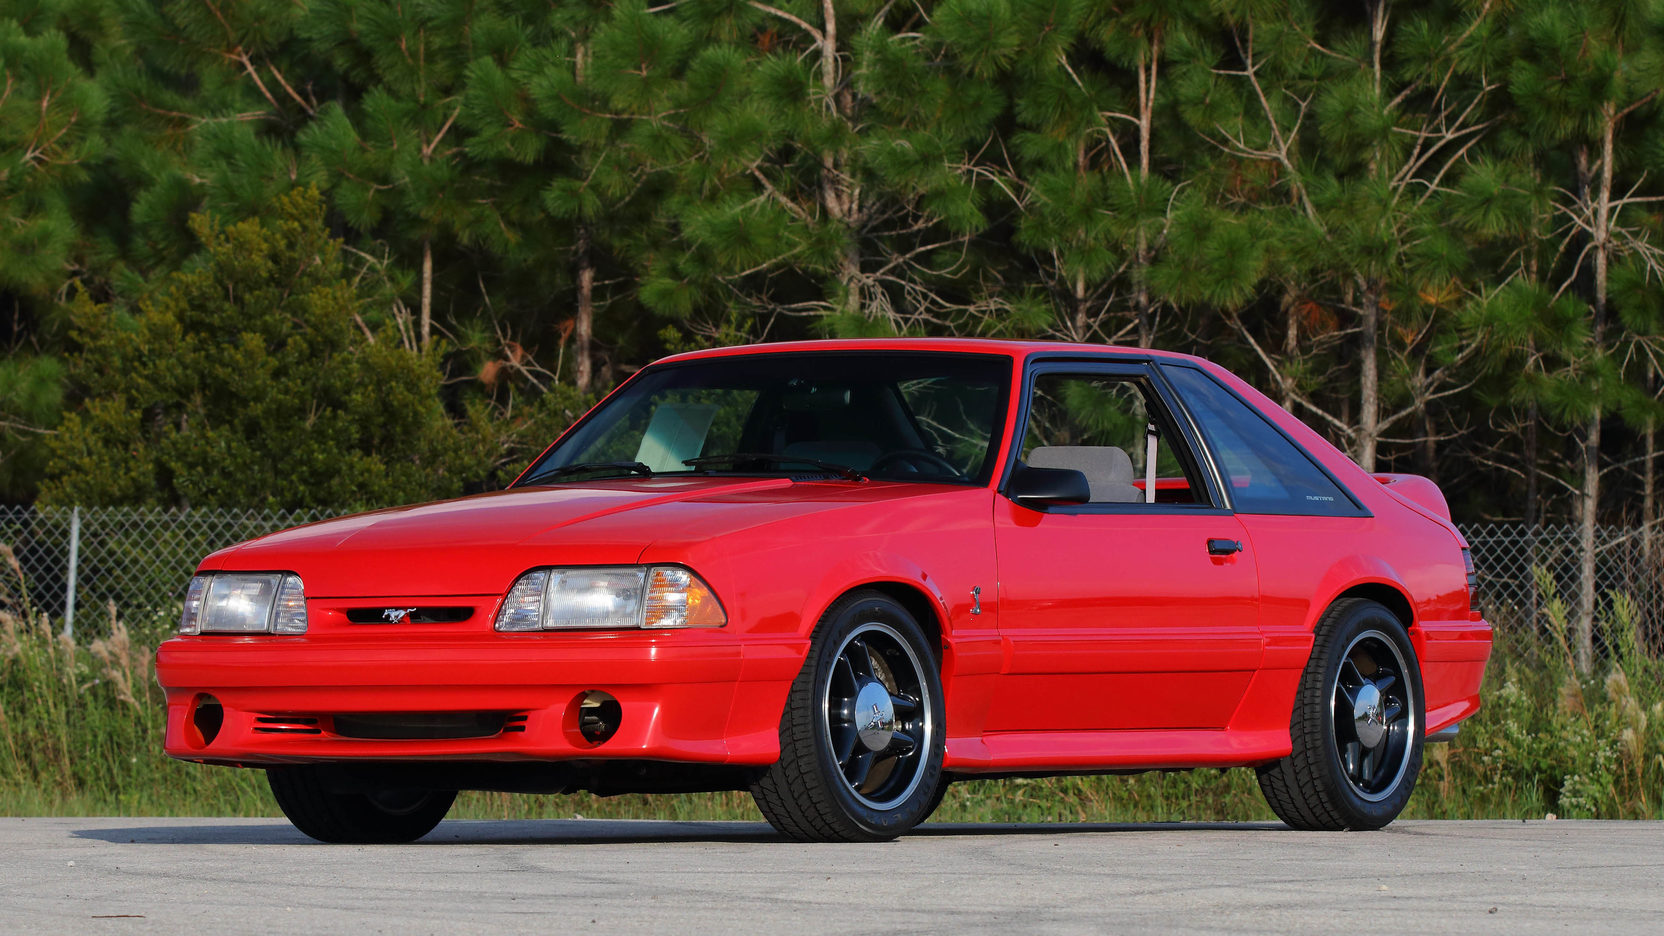 1993 Ford Mustang SVT Cobra R front 3/4